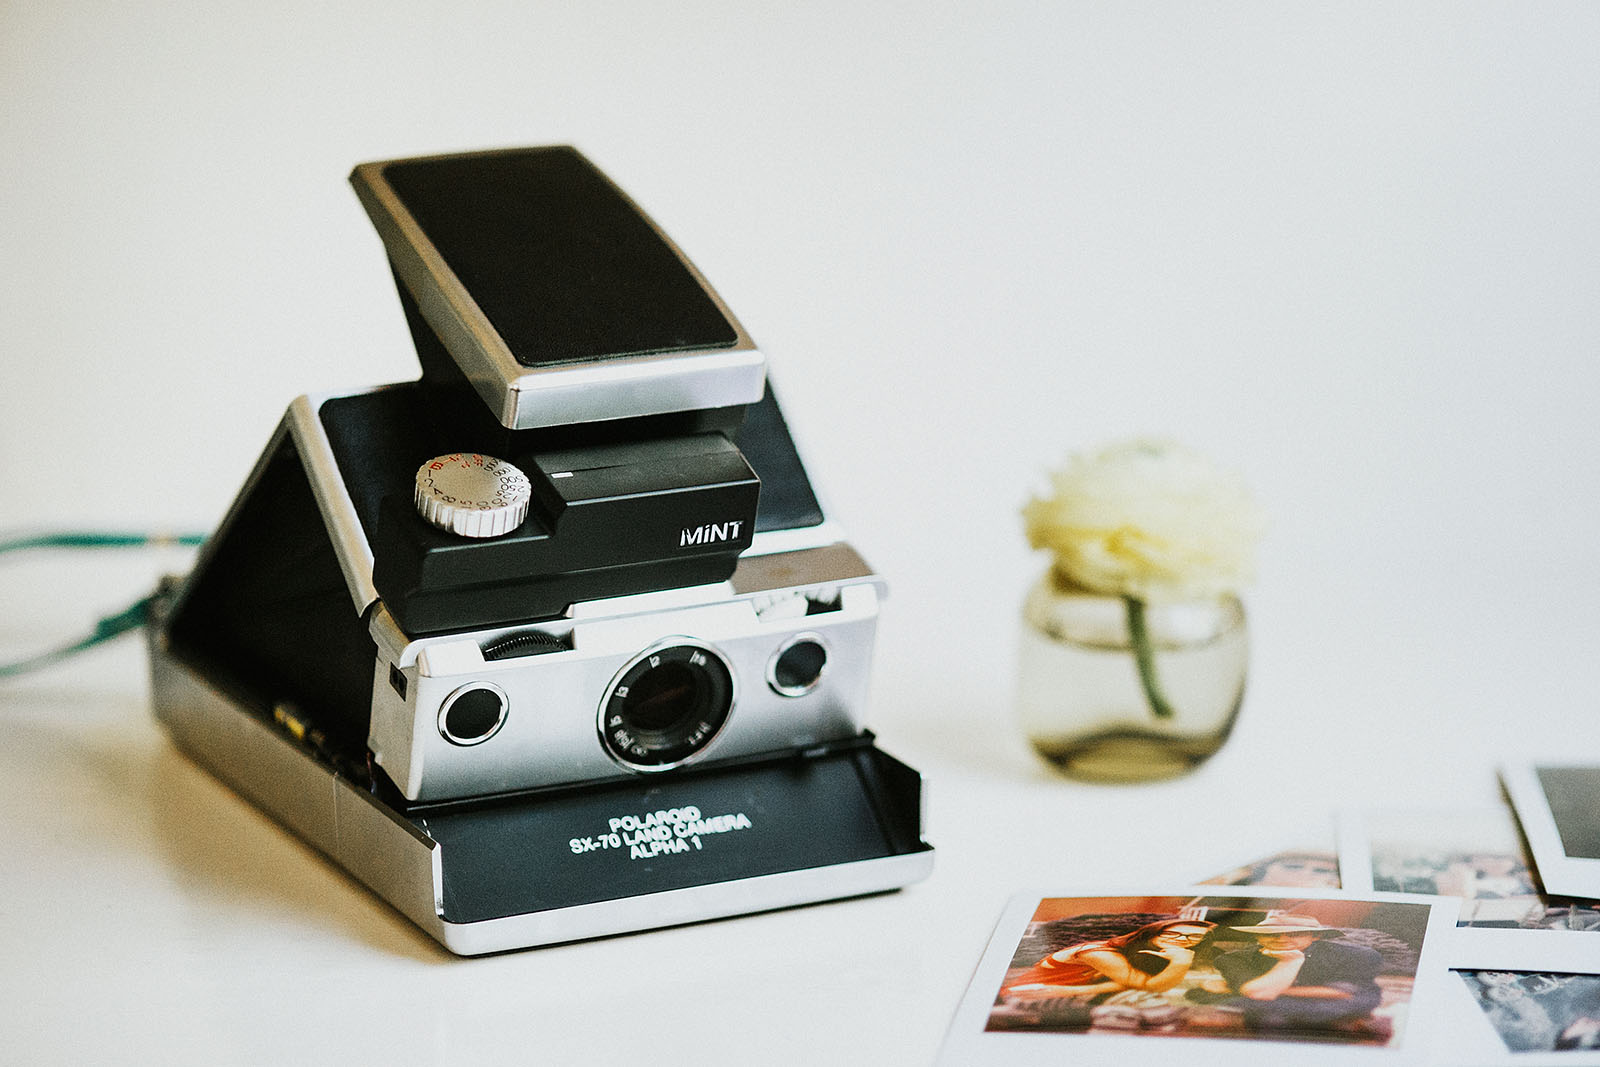 MiNT SLR670m Review